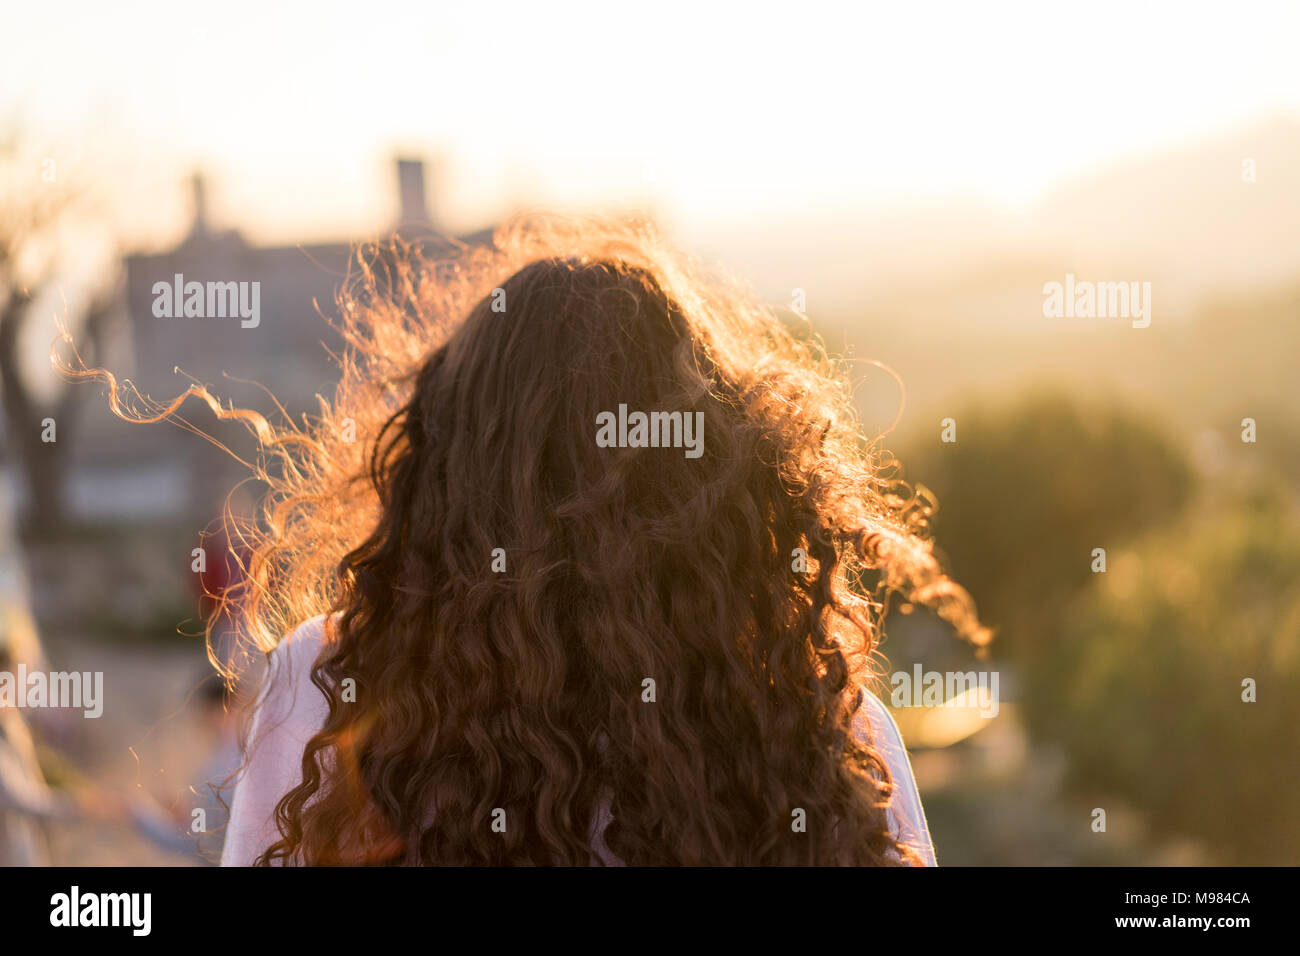 Back View Of Young Woman With Long Curly Hair At Sunset Stock Photo